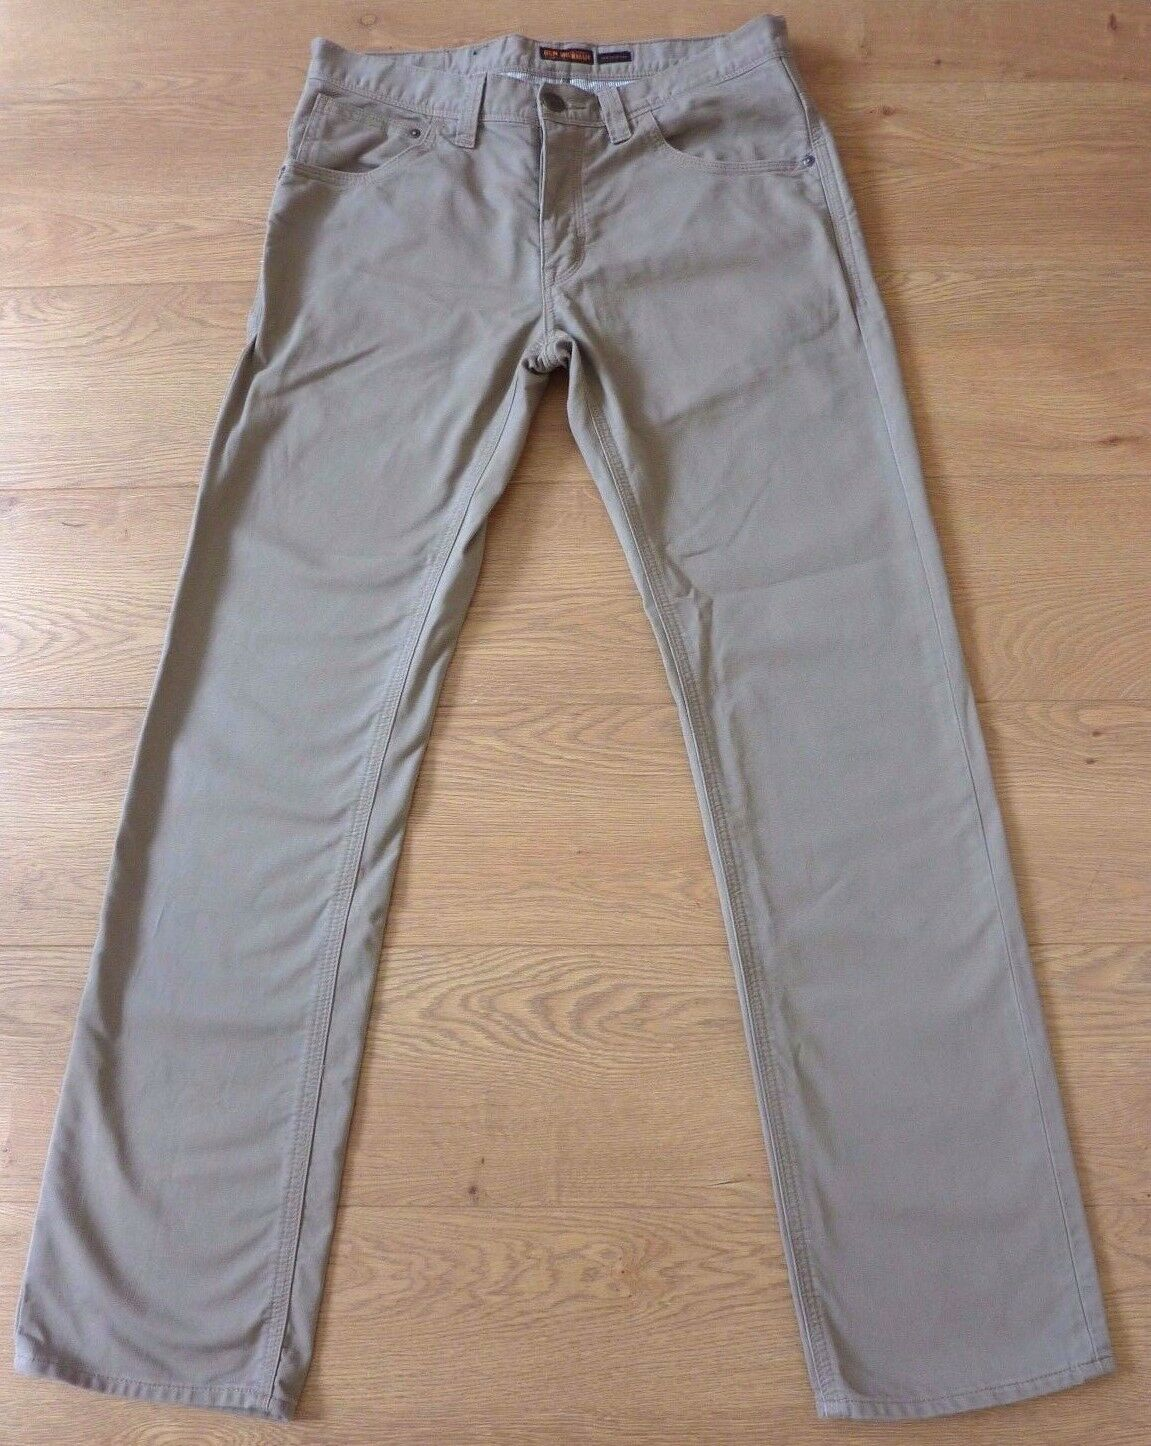 Ben Sherman The Original Men's Straight Fit Beige Trouser Size W32 L34